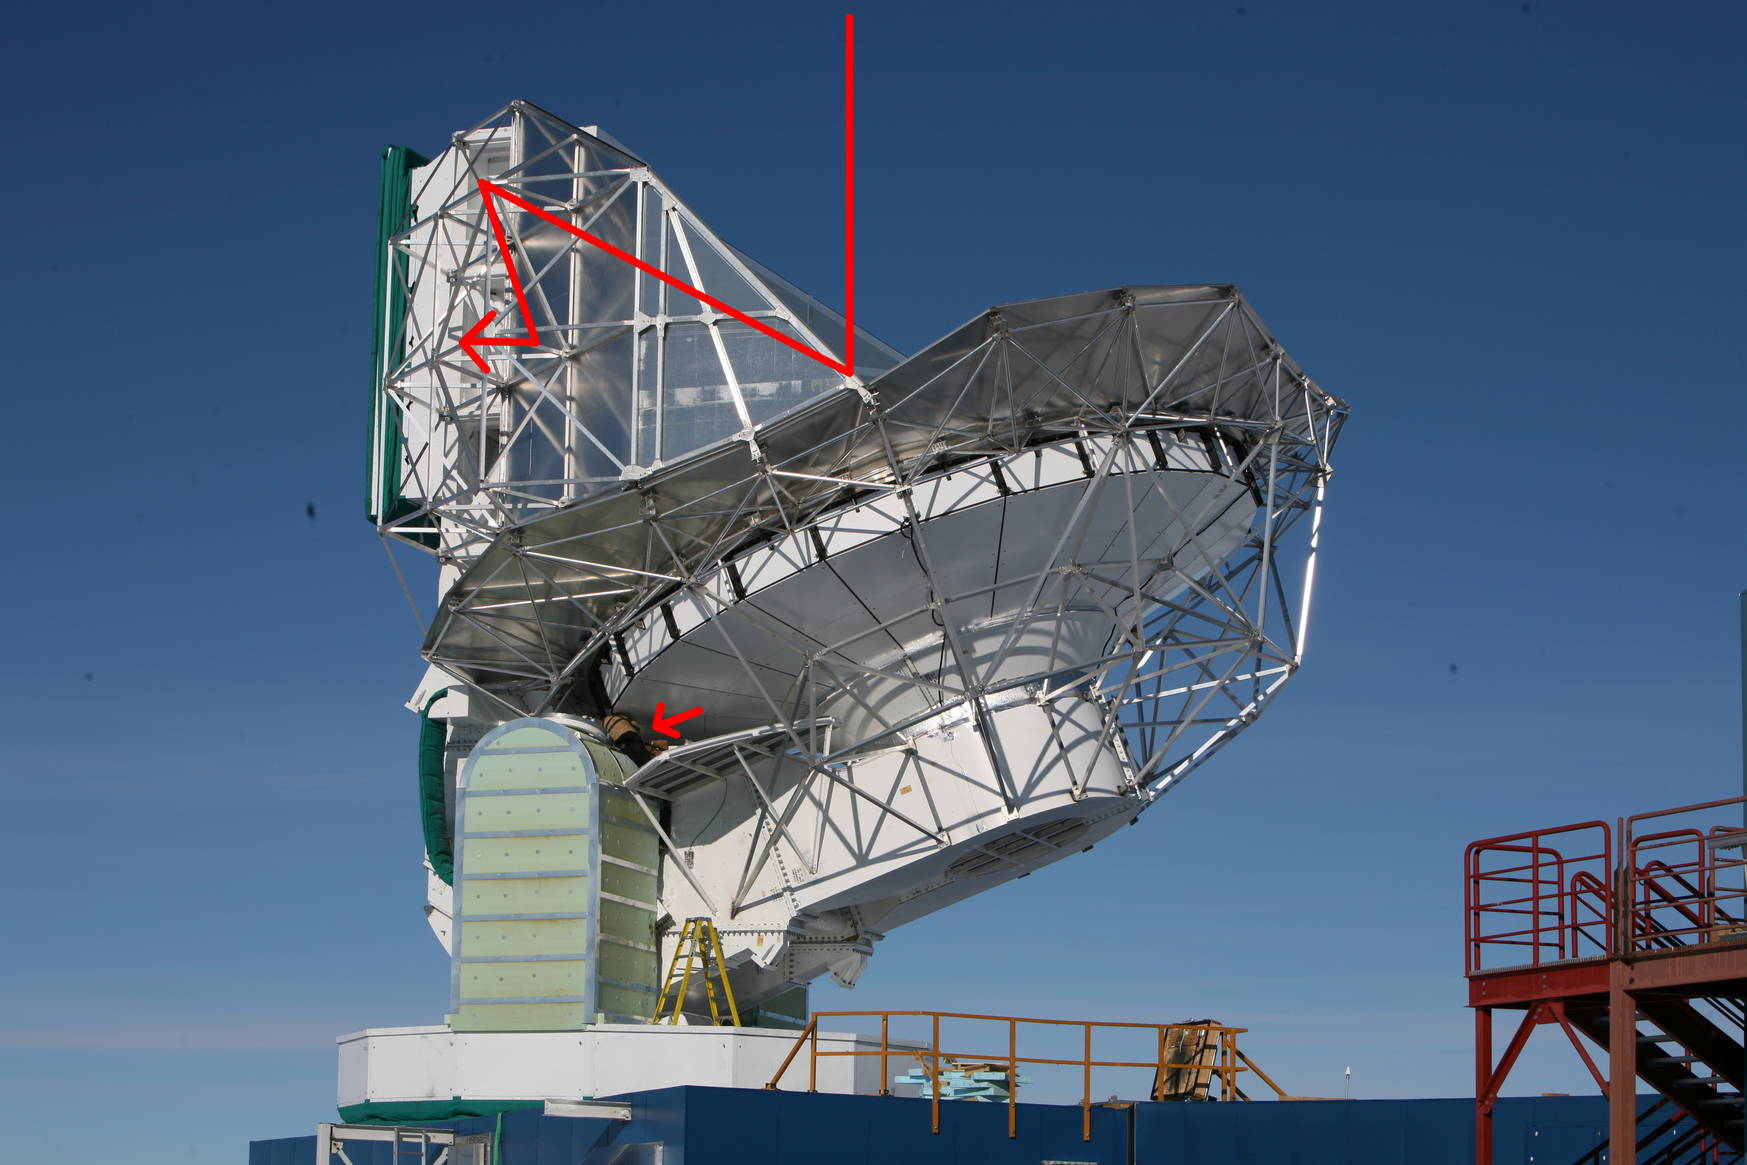 The South Pole Telescope rotates around two axes and can observe anywhere on the sky. Here it points straight up, observing a source in the zenith. The red arrows indicate the path of the microwave light, bouncing off the primary mirror (the big silver dish) into the receiver cabin. There it is reflected by the secondary and tertiary mirror, and then registered in a camera (which we call receiver). The arrow points out one of our colleagues for size comparison. He or she is greasing one of the mount bearings.